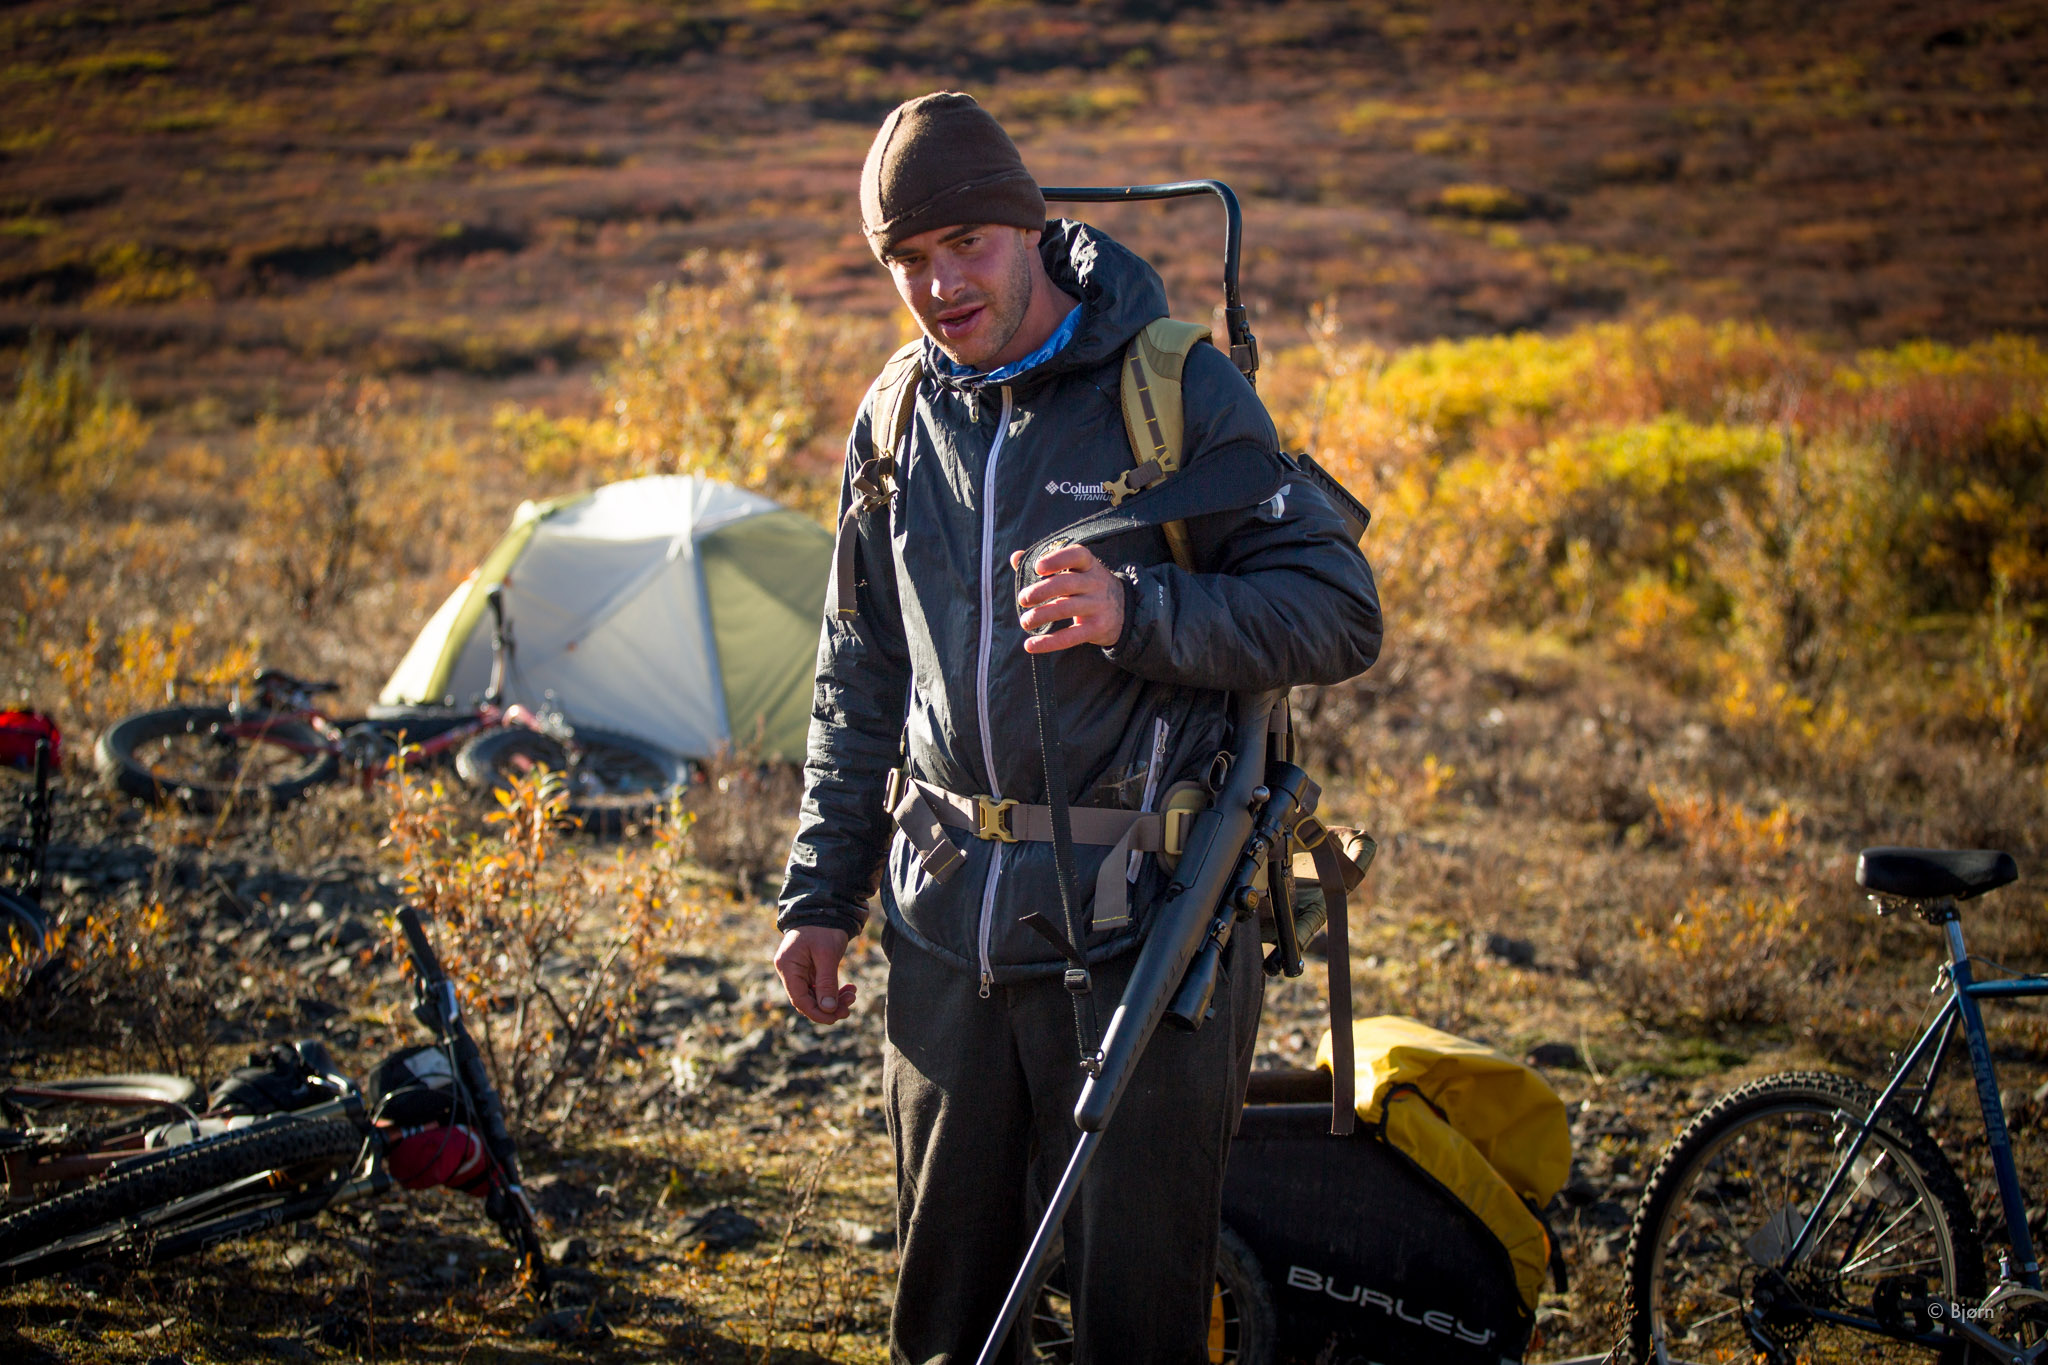 Brian Schuch prepares to leave camp for the day in pursuit of caribou.